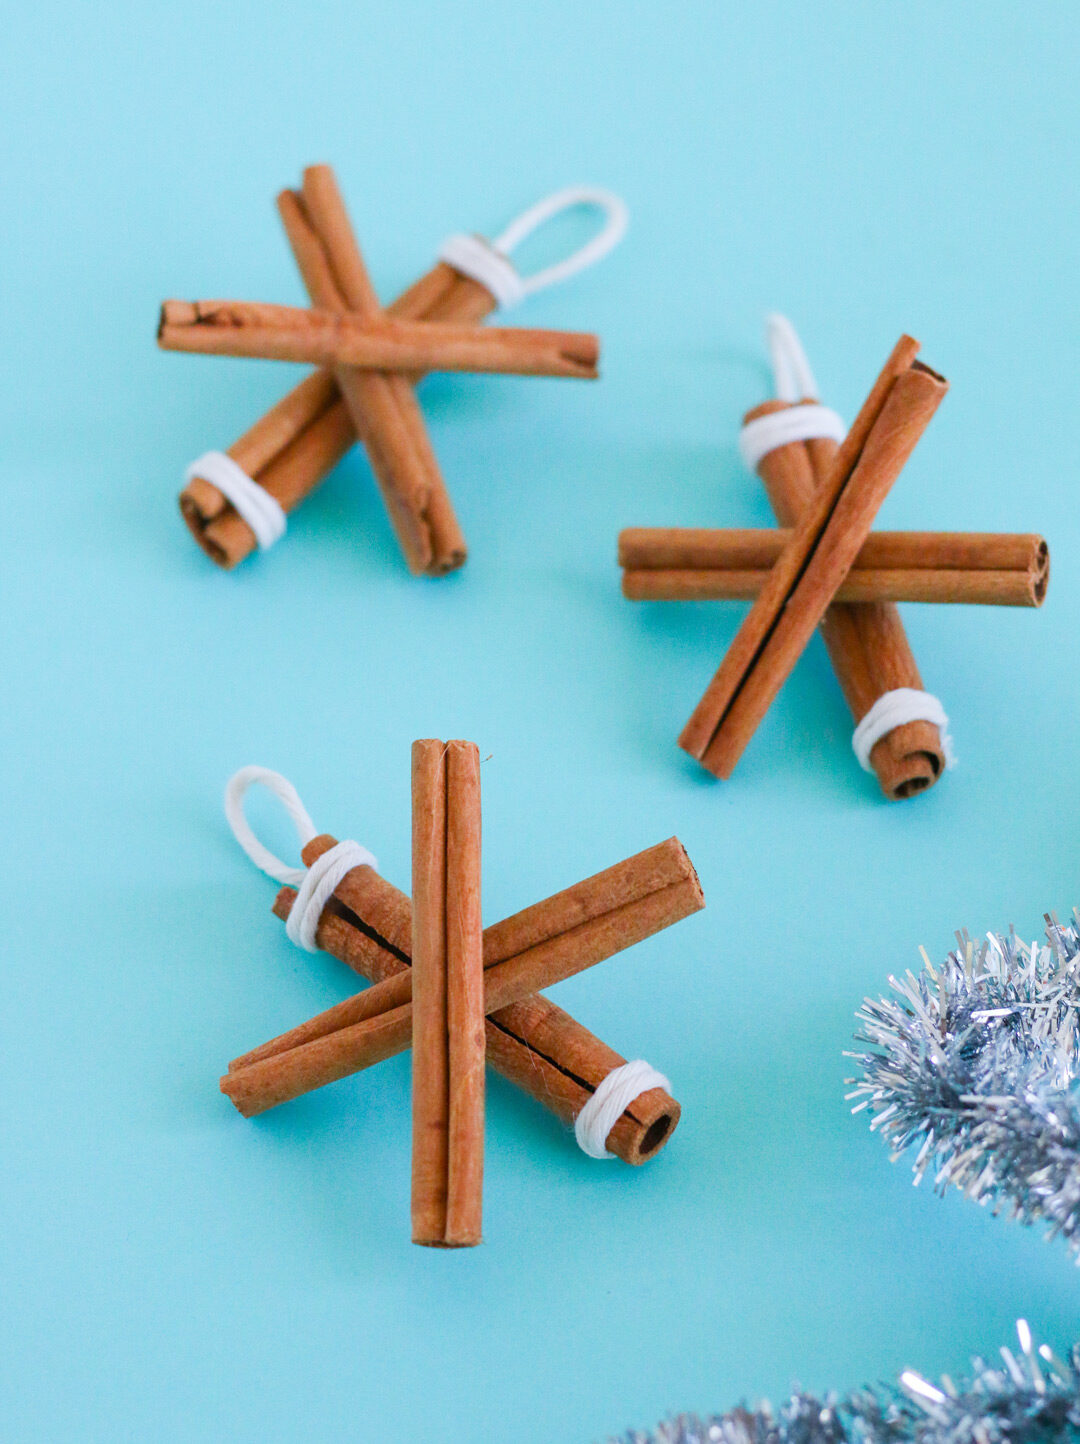 DIY Holiday Decorations: Cinnamon Stick Snowflake Ornaments